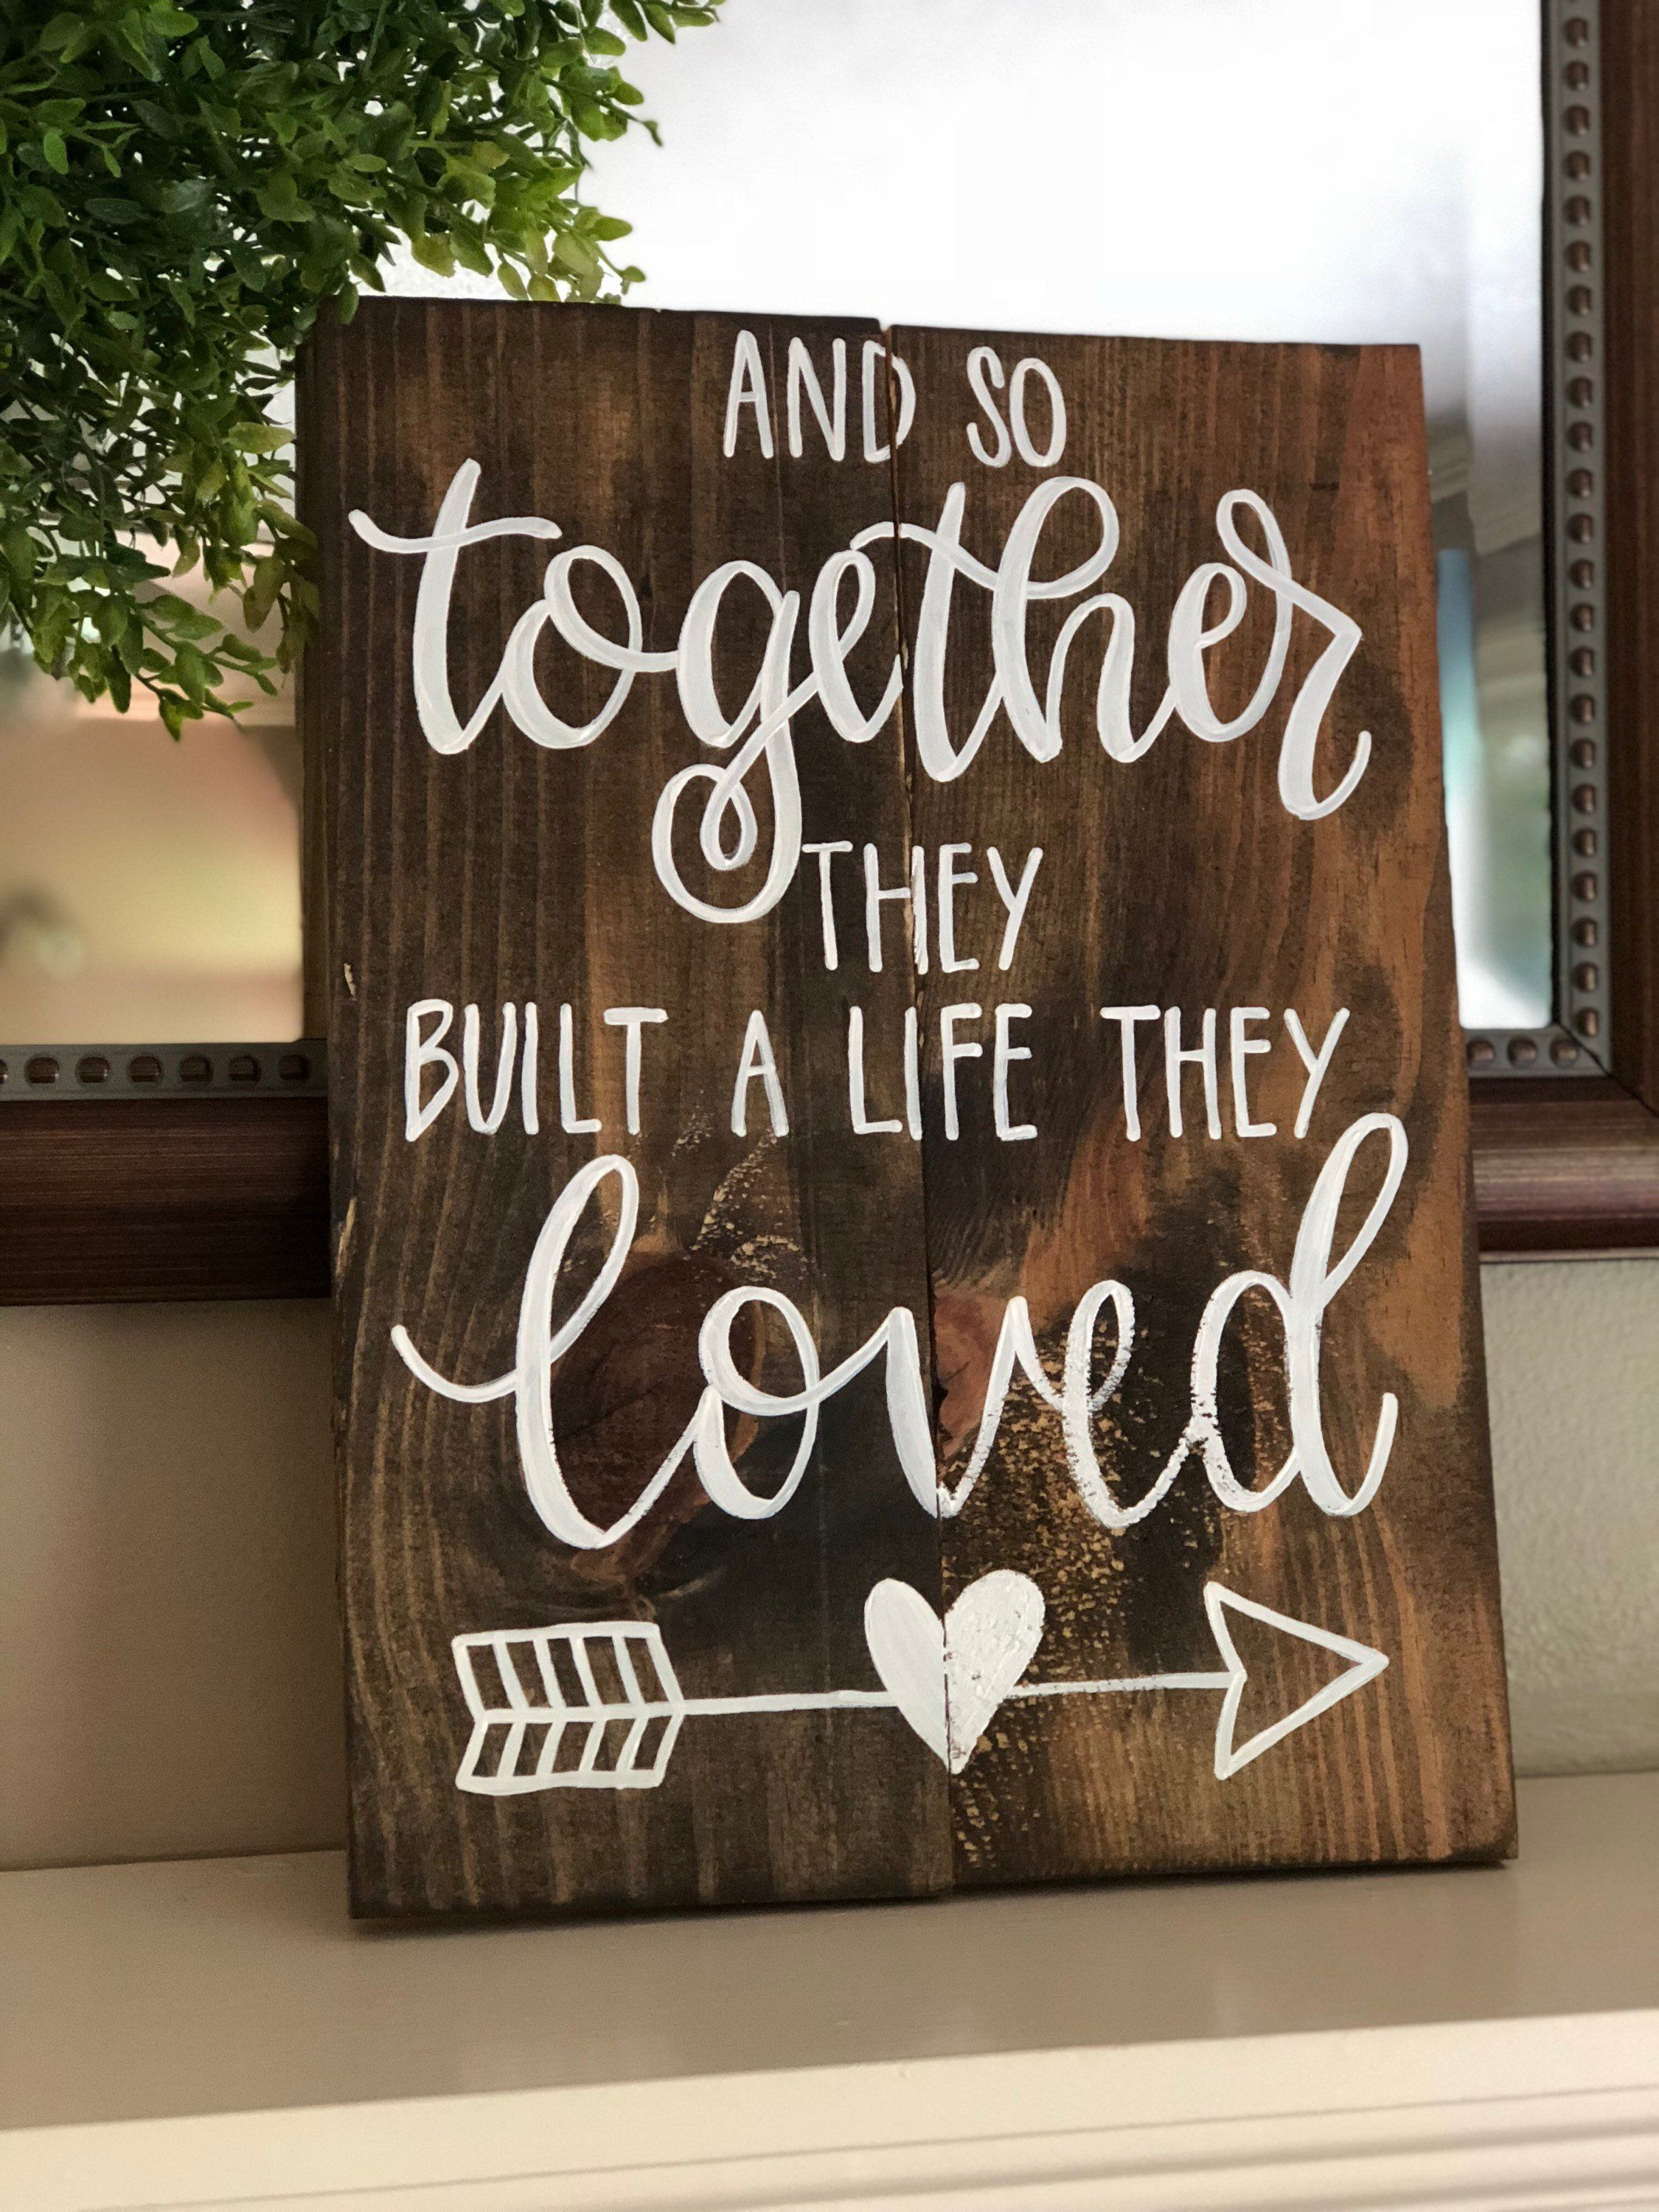 Love Wood Sign Wood Signs Wood Signs Sayings Wedding Signs Love Signs Wooden Signs And So Together They Built A Life They Loved Love Wood Sign Hymn Signs Wood Signs